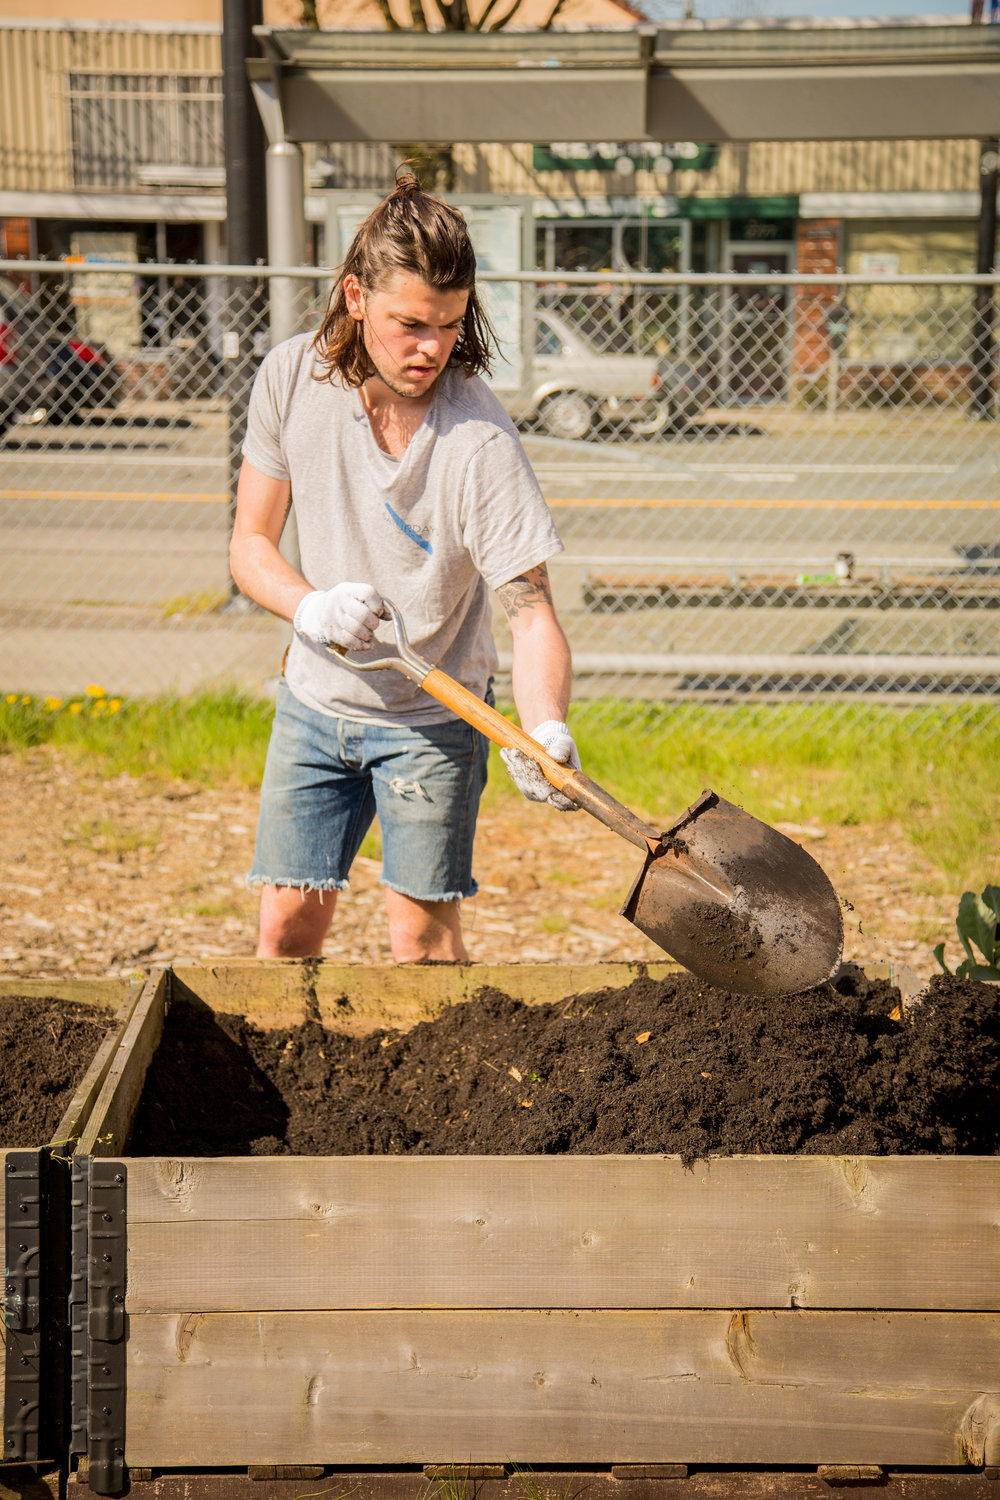 Raised_Garden_Bed_The_Drive_Temporary_Community_Garden_04.2016_Shifting_Growth_152.jpg